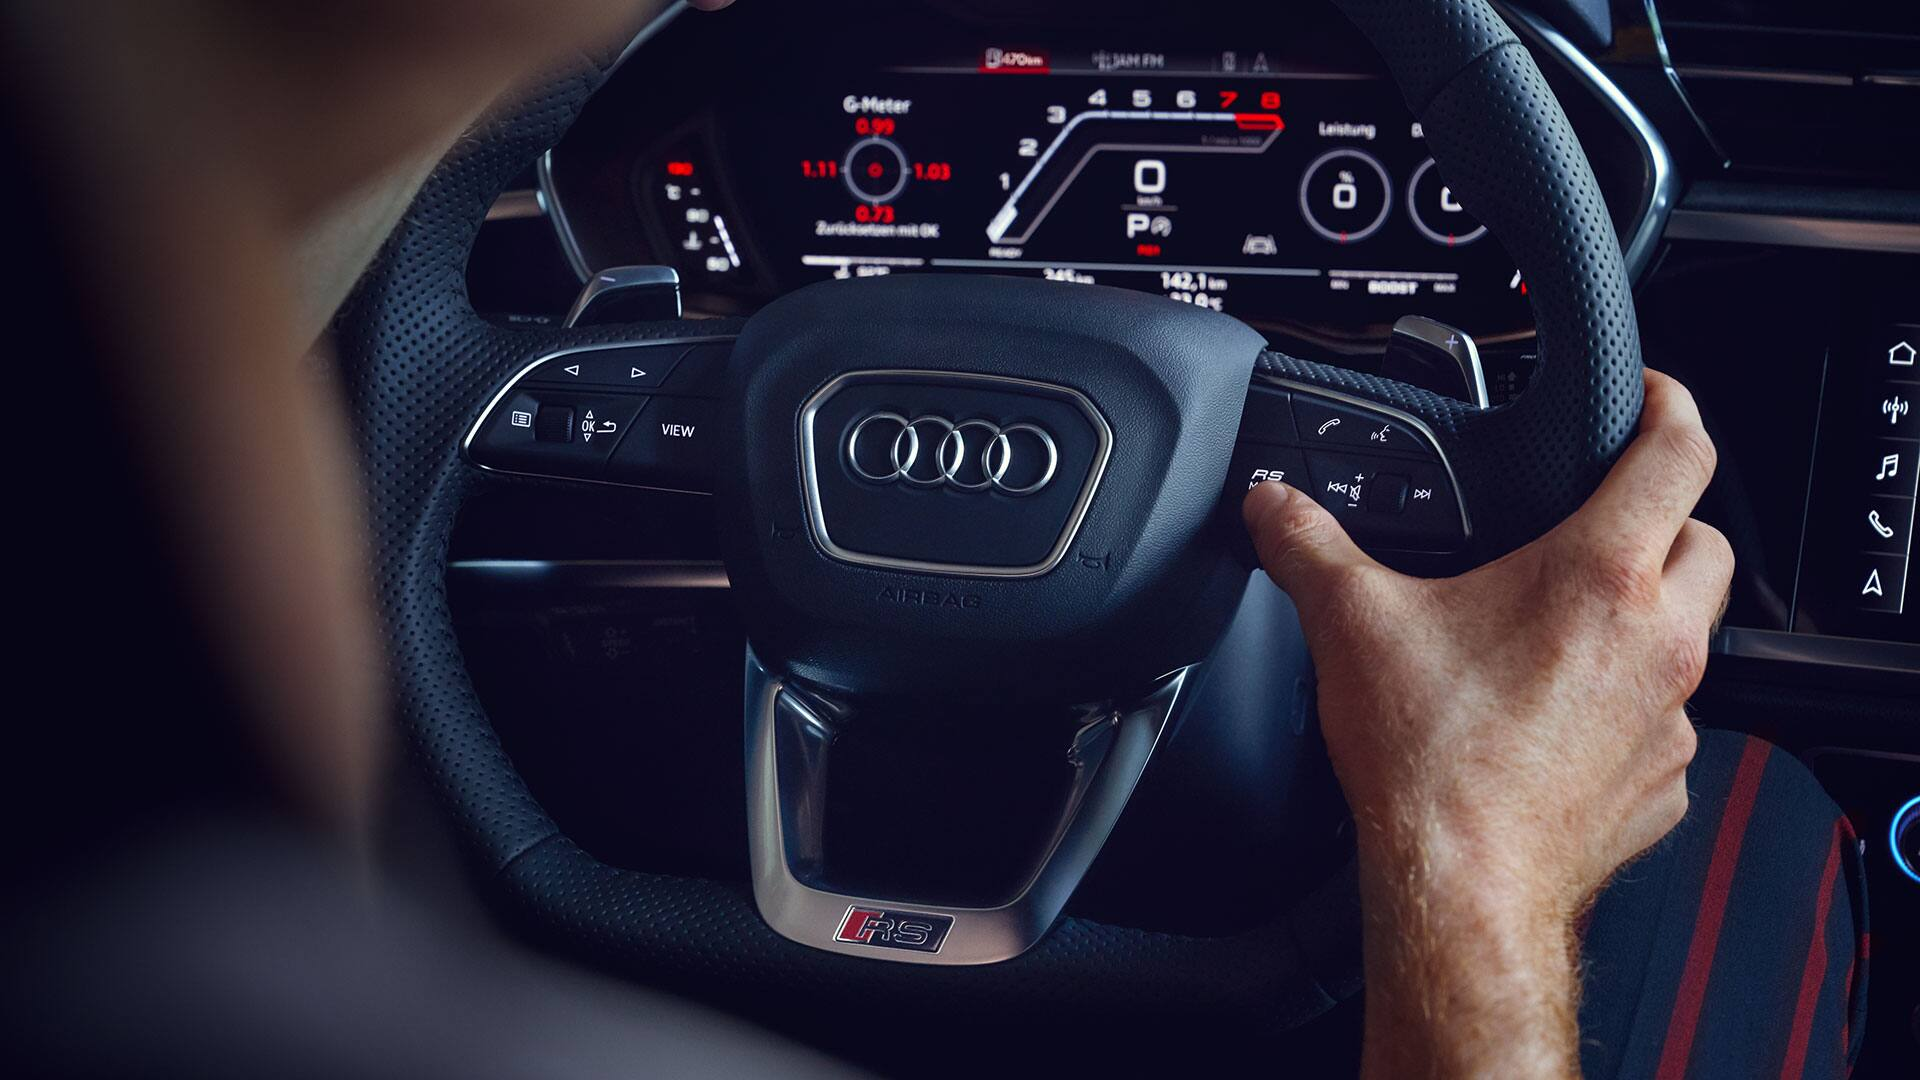 Audi virtual cockpit dans l'Audi RS Q3 Sportback